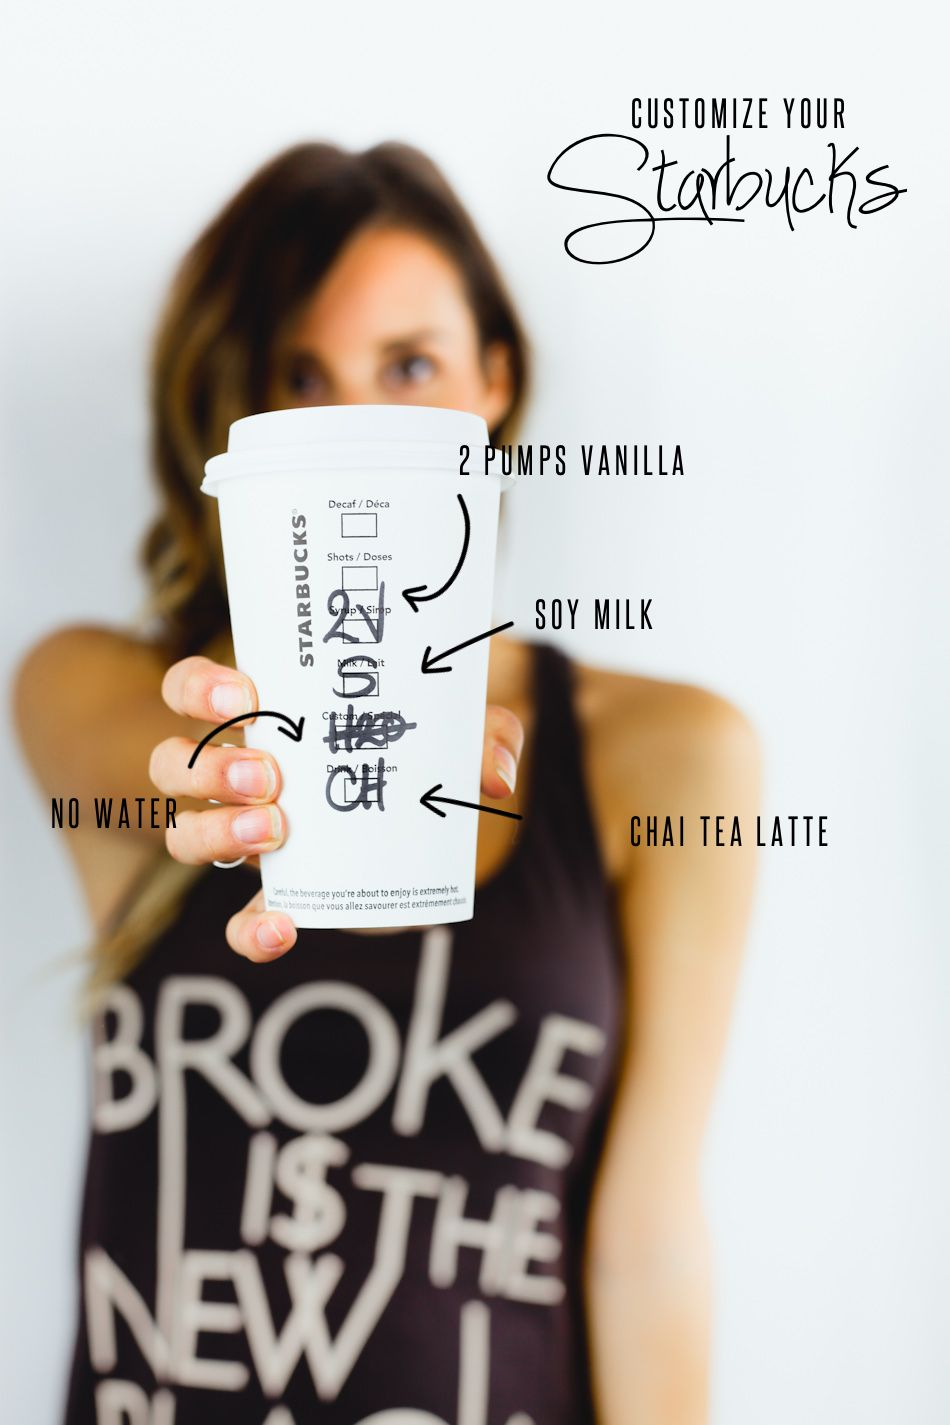 Customize Your Starbucks | Siren Love | Pinterest | Starbucks ...